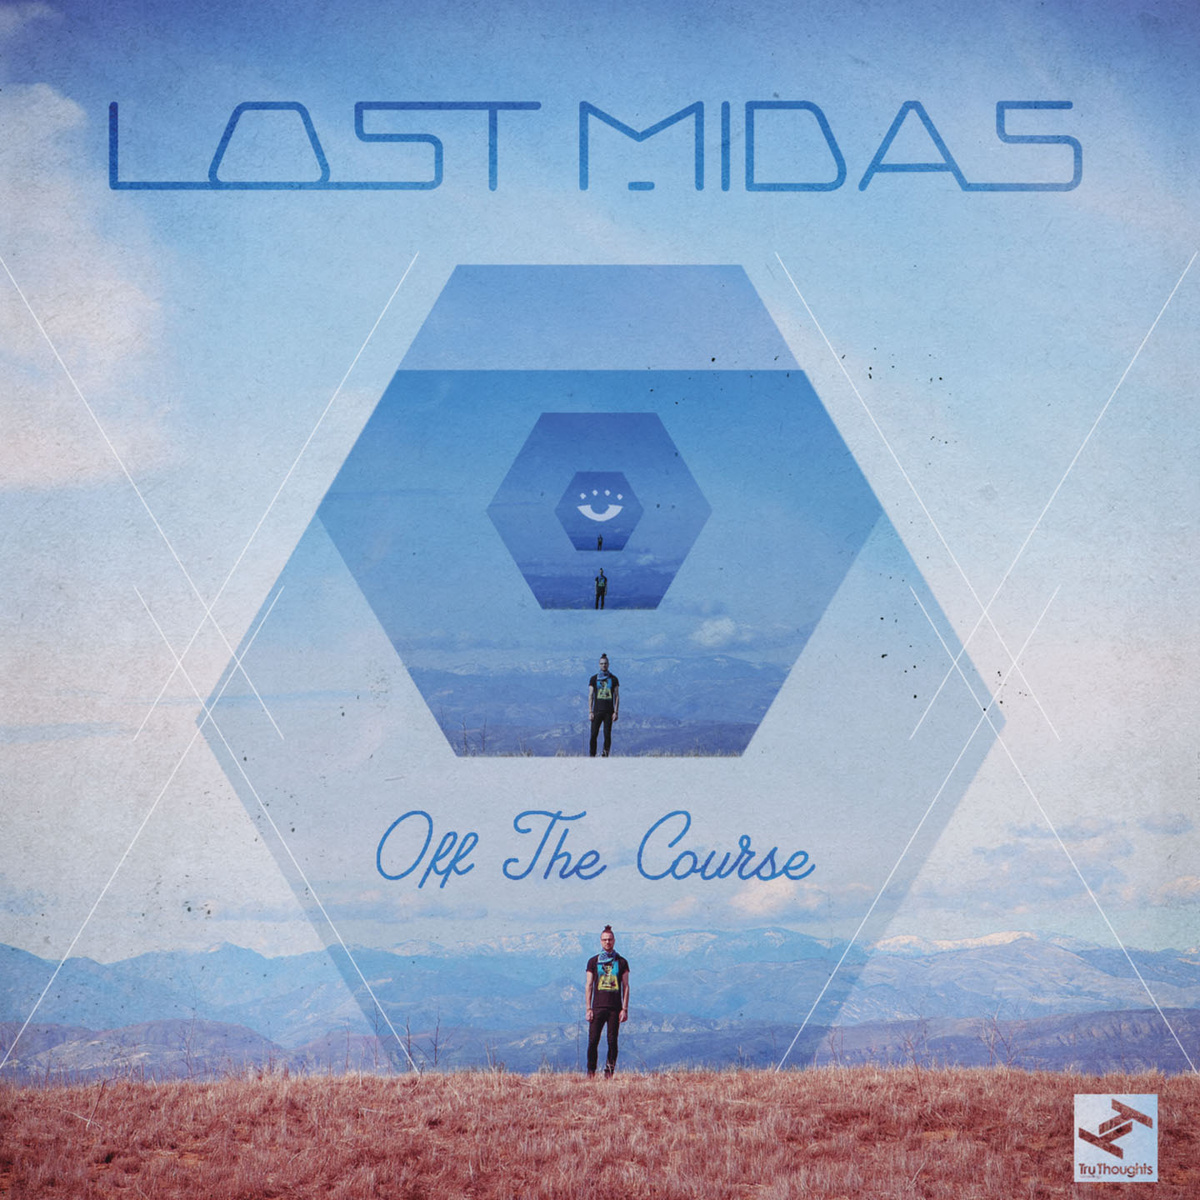 Lost Midas – Off The Course ( Tru Thoughts Records)